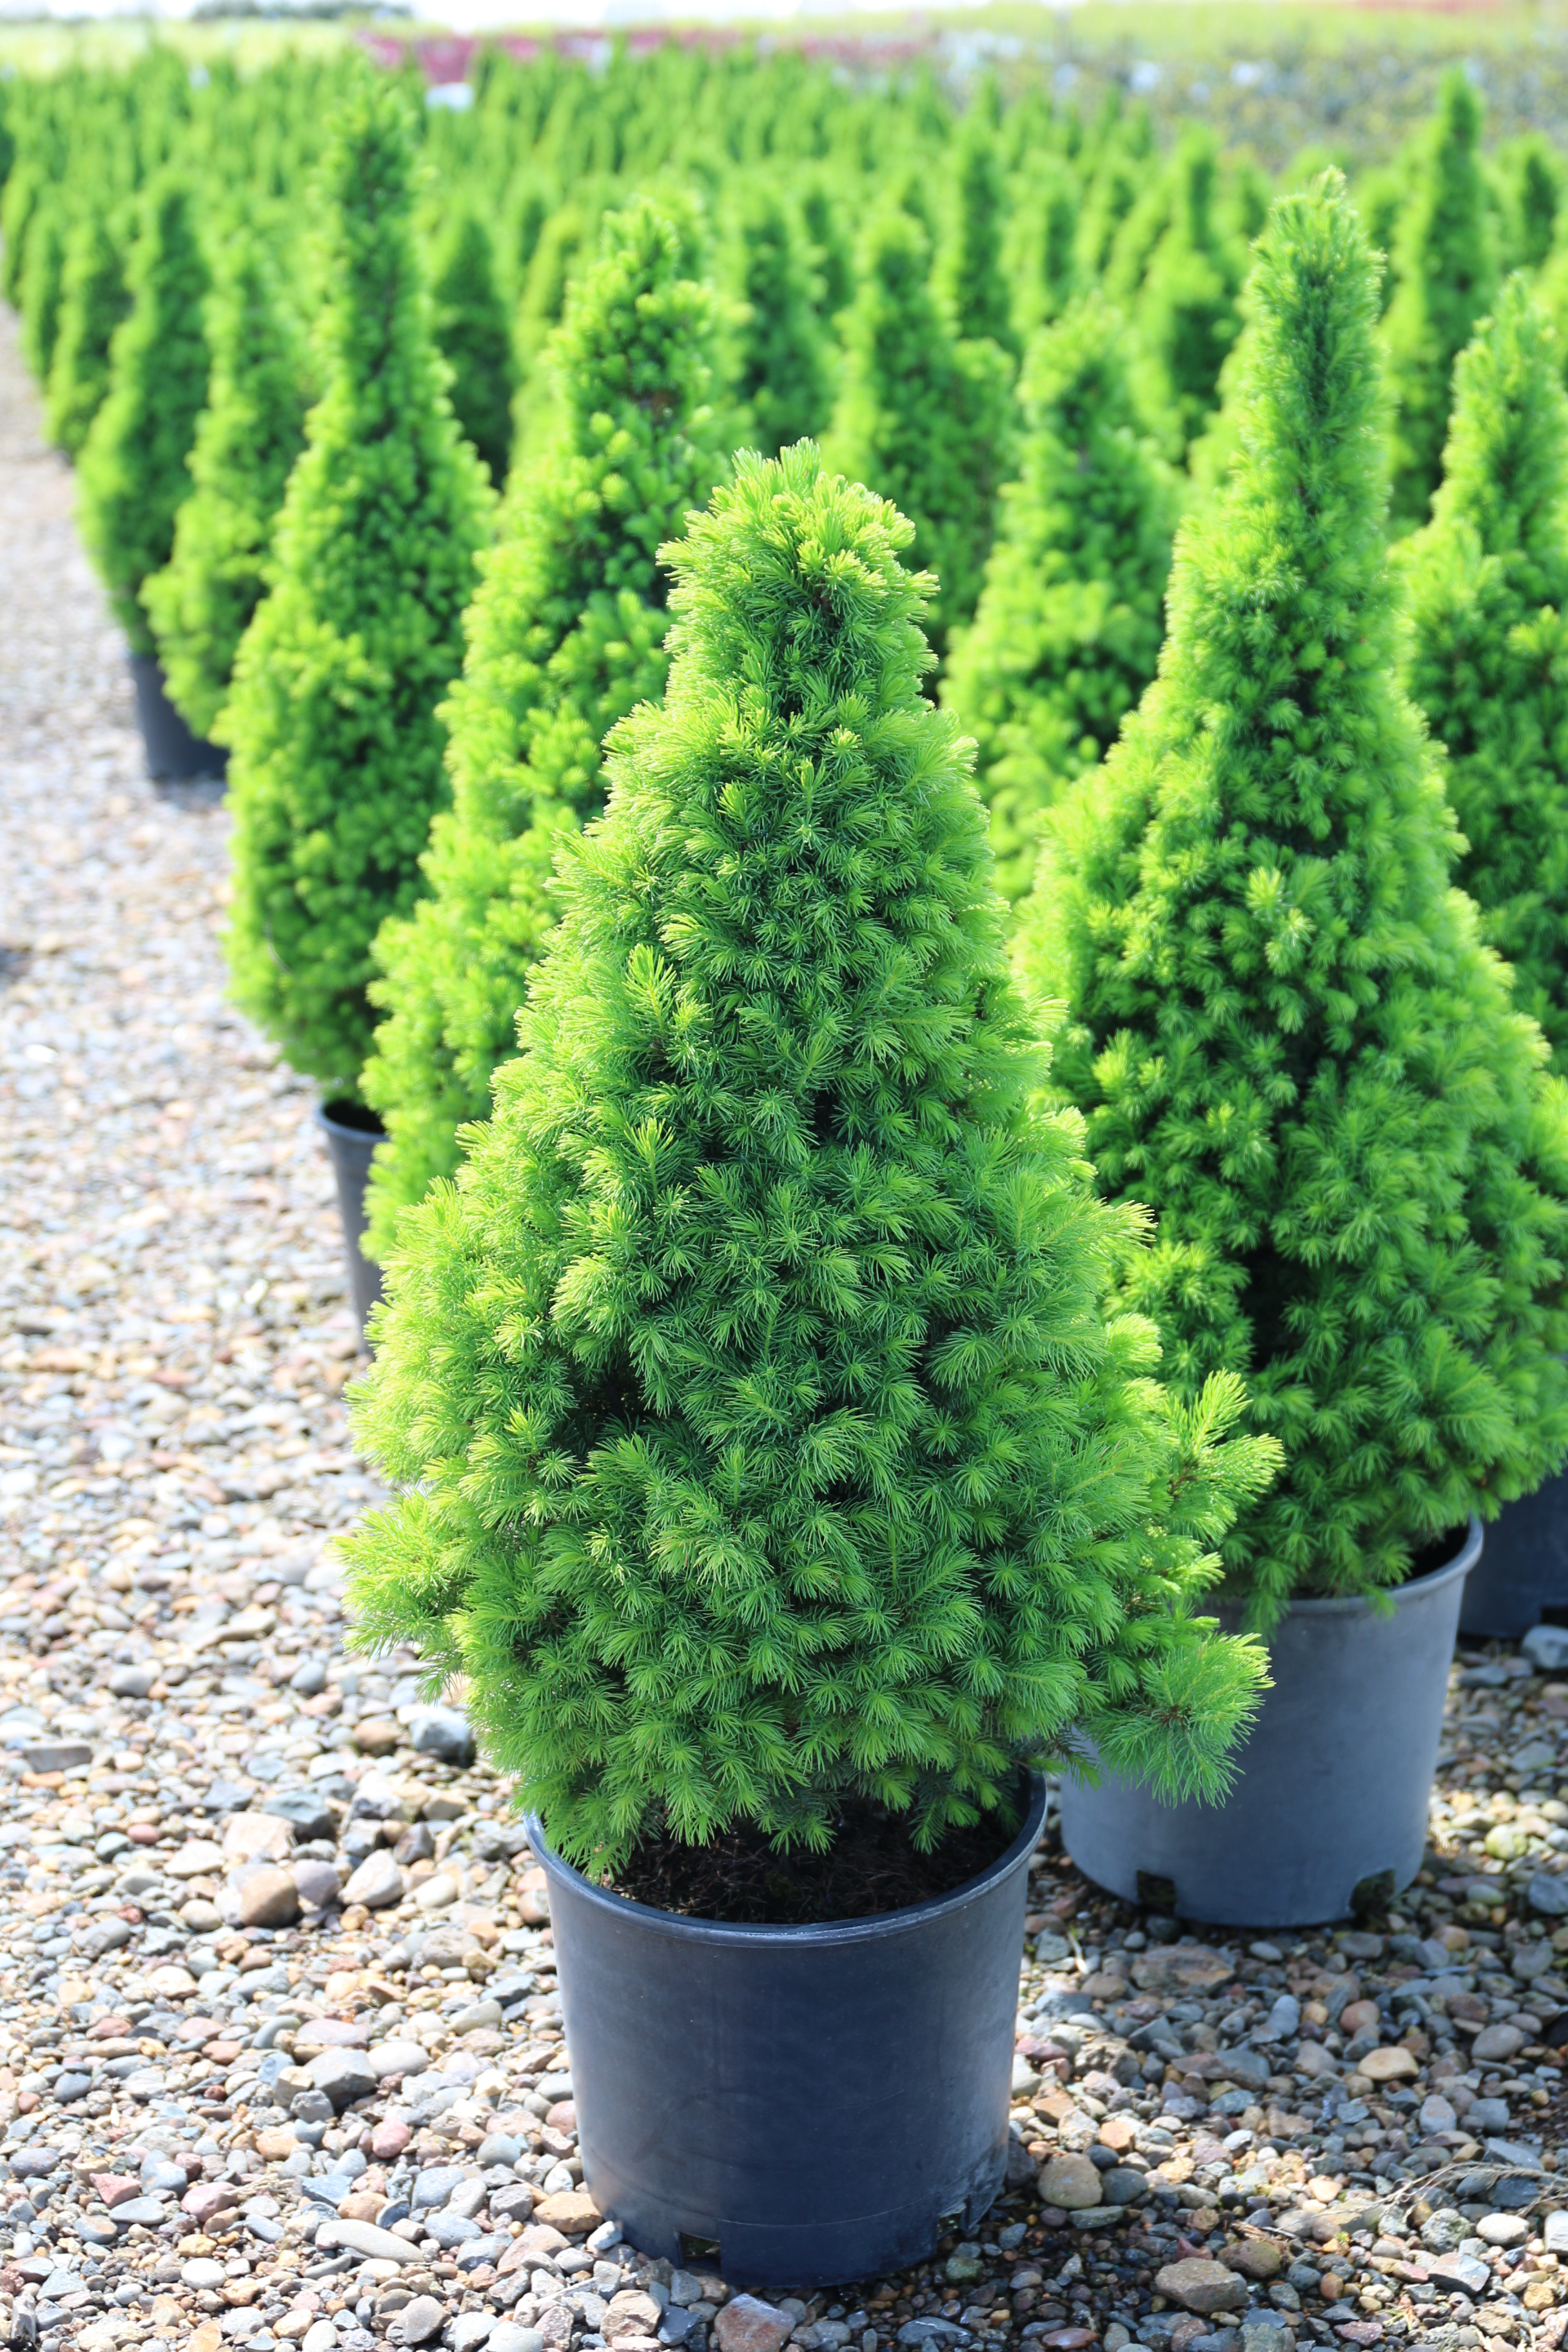 picea glauca conica 3g new growth 4 26 2015 1 16 22 am 2432x3648 blue heron nursery. Black Bedroom Furniture Sets. Home Design Ideas